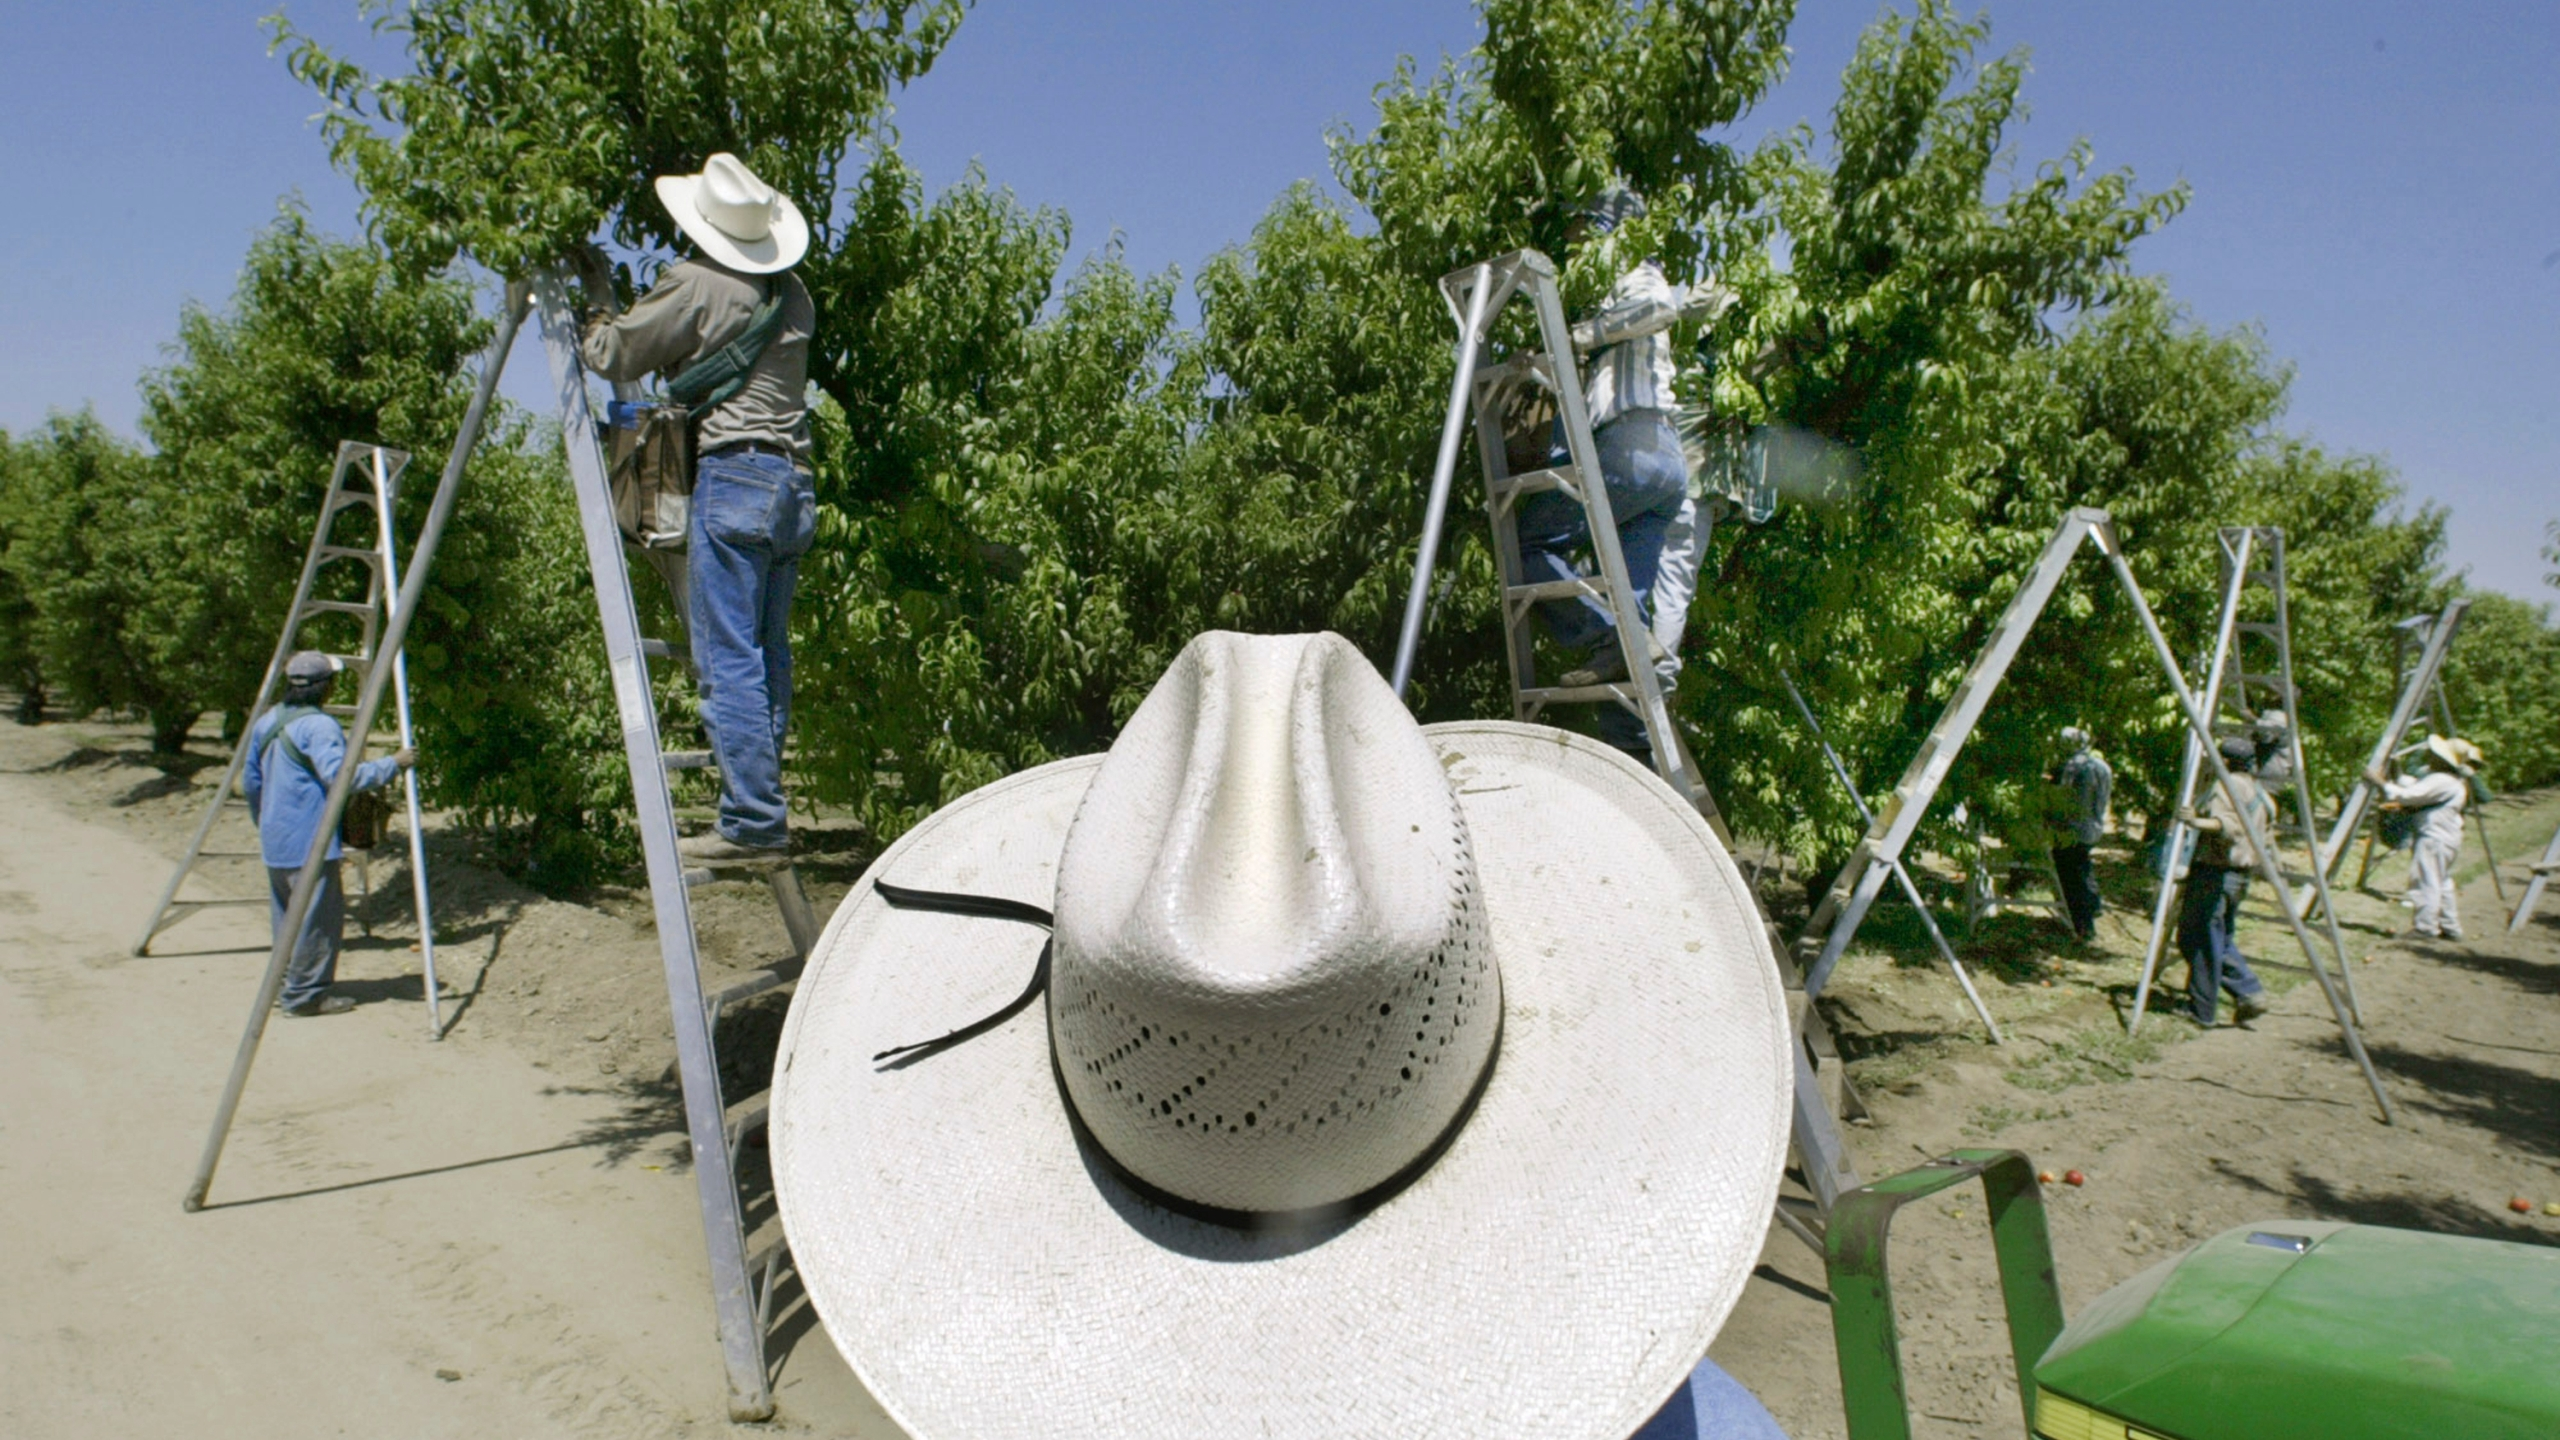 In this May 13, 2004, file photo, a foreman watches workers pick fruit in an orchard in Arvin, Calif. On Monday, July 12, 2021 lawsuits were filed in four California counties seeking potential class-action damages from Dow Chemical and its successor company over a widely used bug killer containing Chlorpyrifos that has been linked to brain damage in children. Chlorpyrifos is approved for use on more than 80 food crops, including oranges, berries, grapes, soybeans almonds and walnuts, though California banned the sales of the pesticide last year and ended spraying this year.(AP Photo/Damian Dovarganes, File)